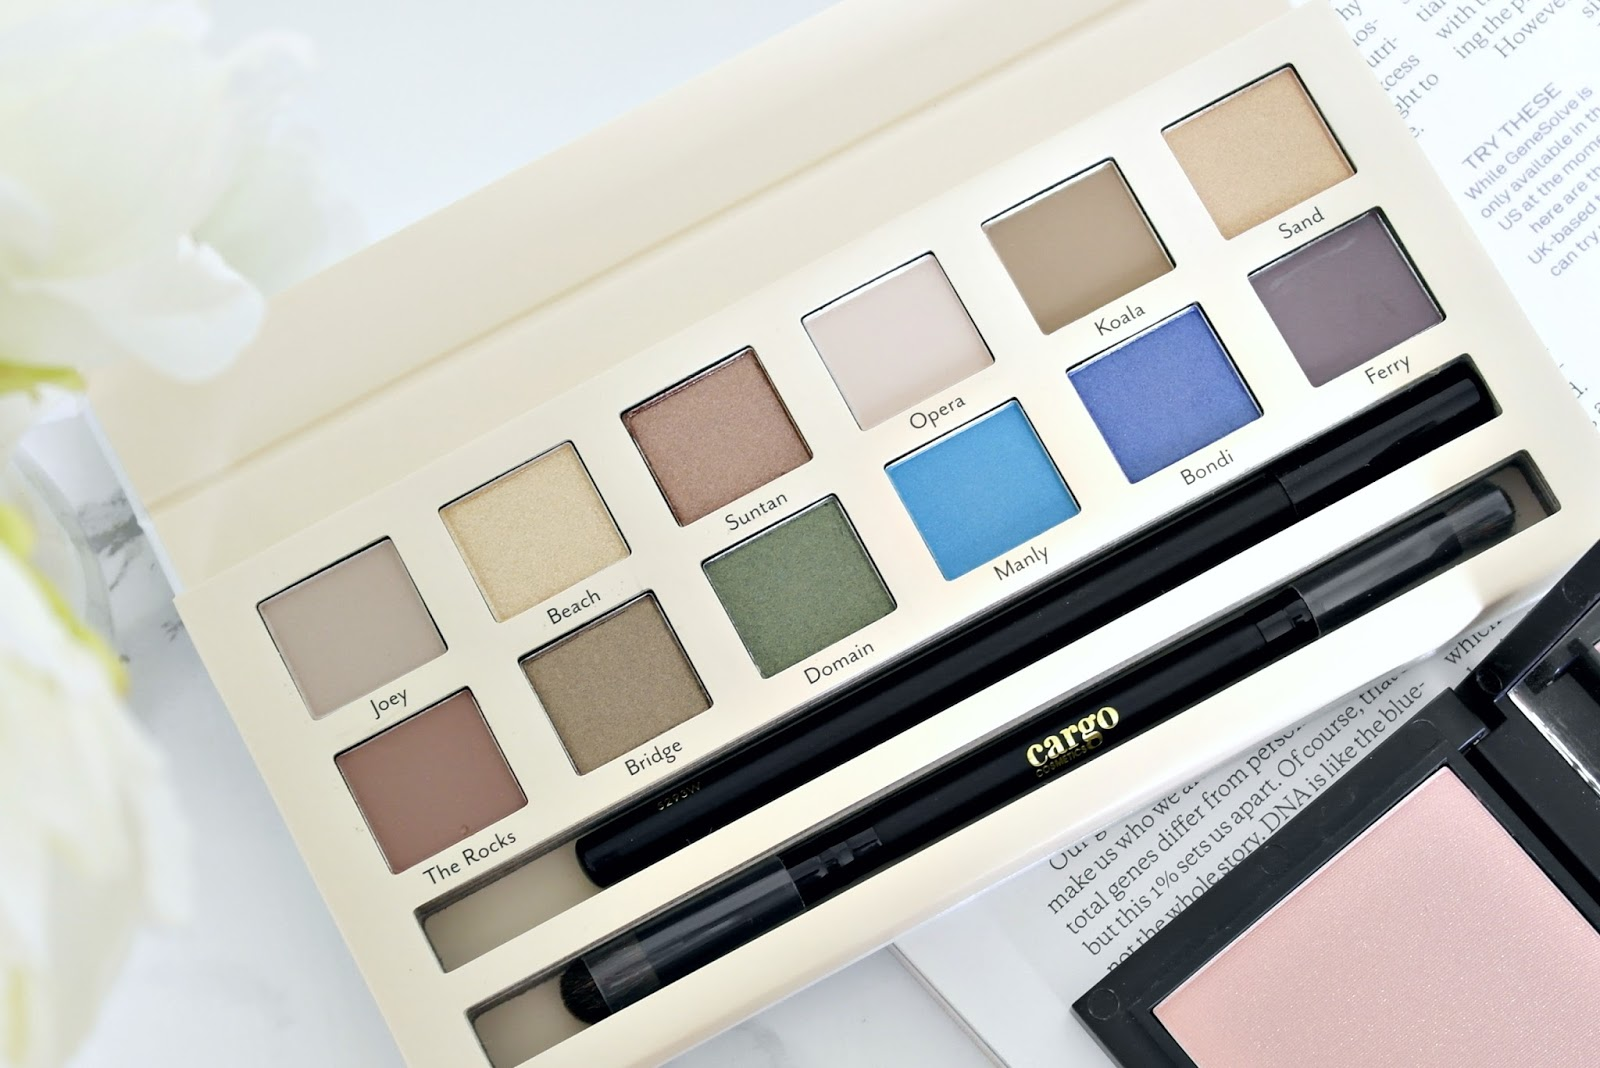 Cargo Cosmetics land down under palette, review